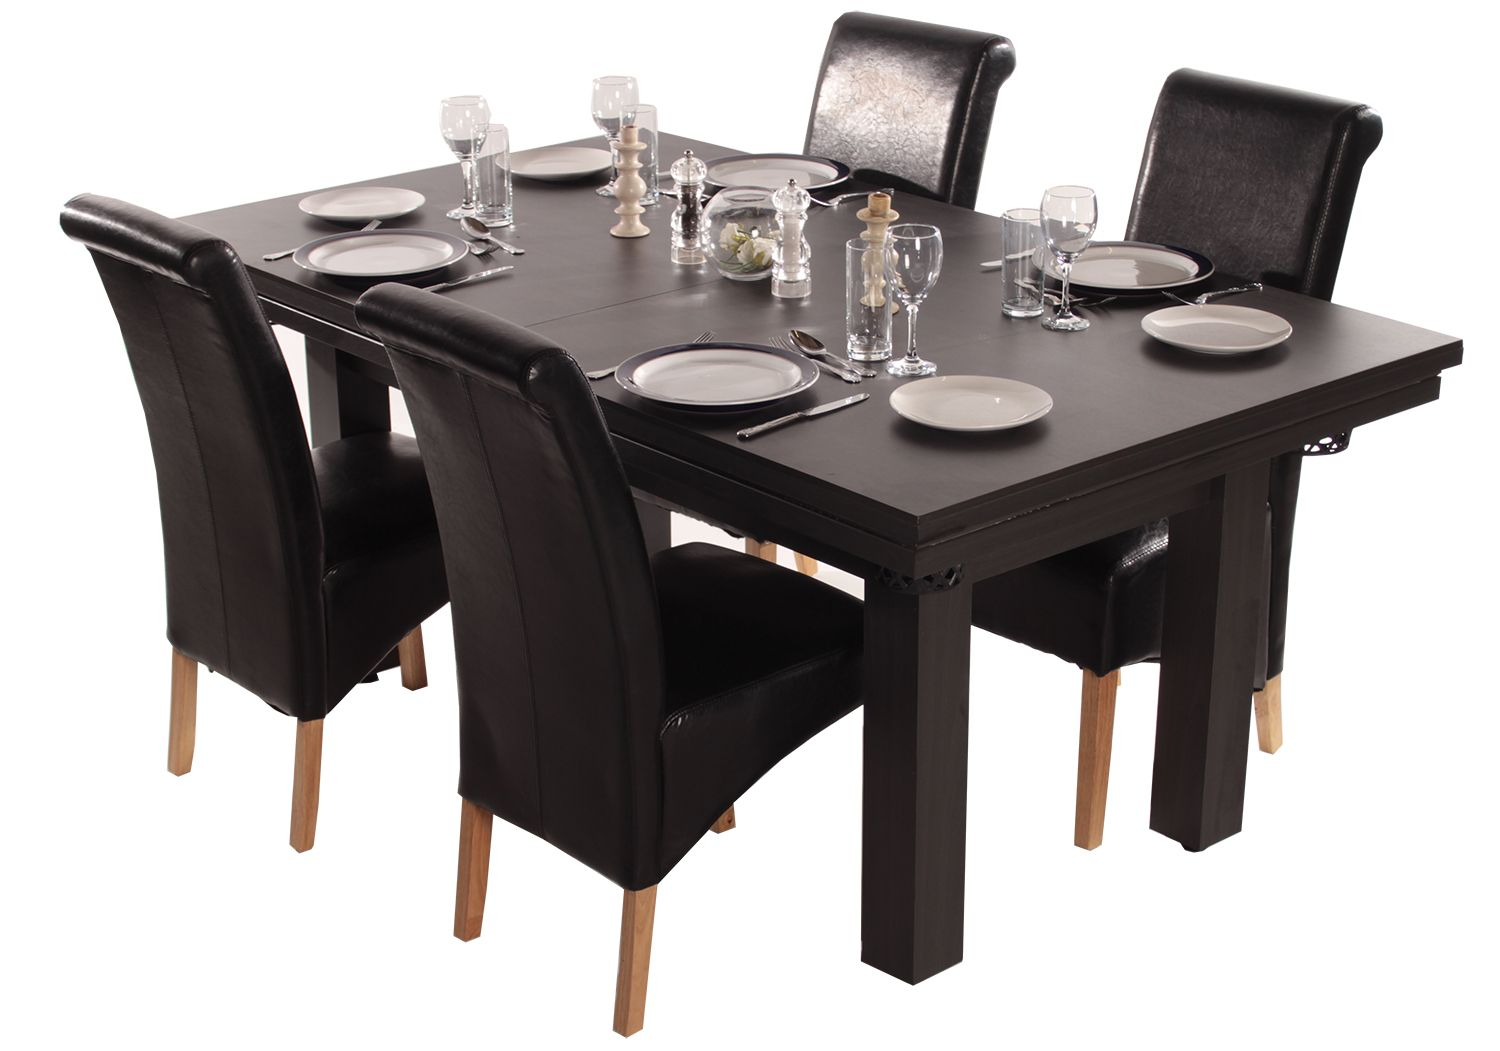 Dual Purpose Amalfi Pool Dining Table With Lift Off Top For Easy Access And  Installation.